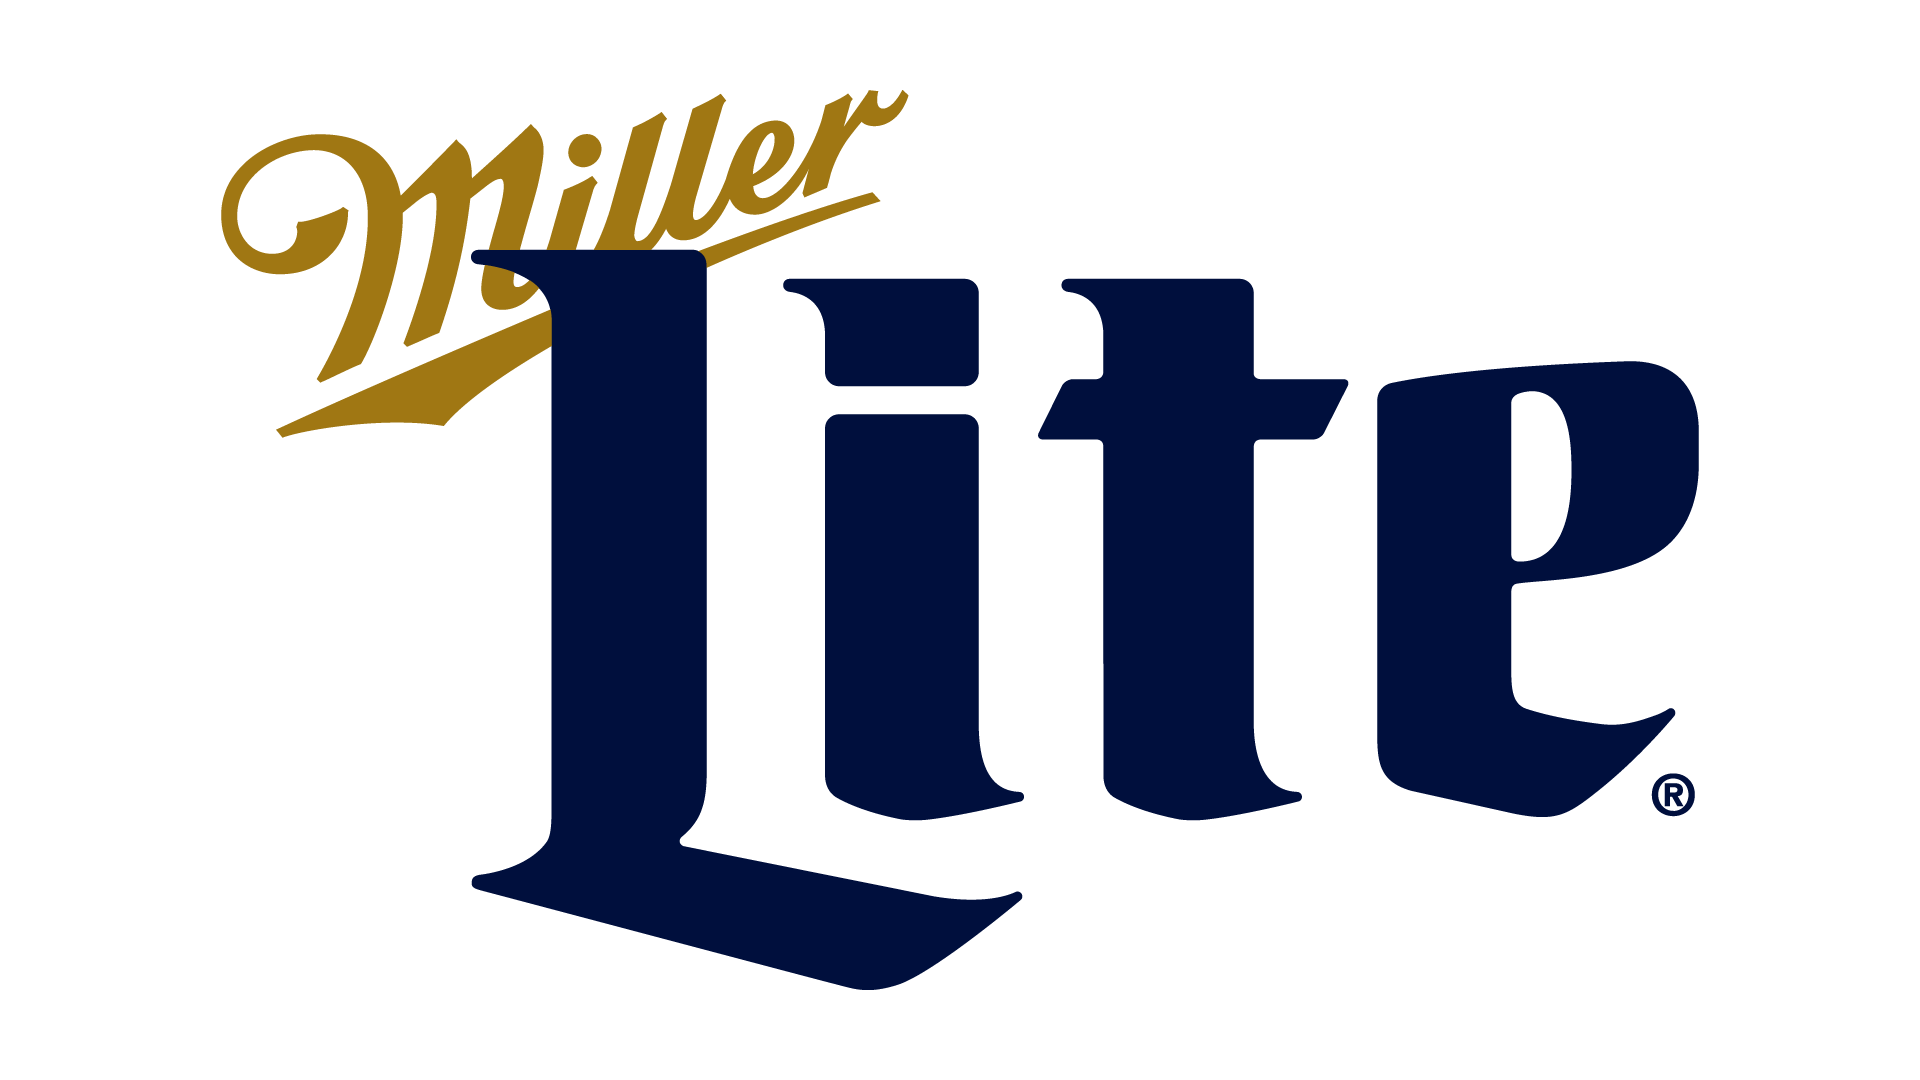 Miller beer logo clipart image transparent Honda Indy Toronto - Miller Lite Named the Featured Beer of ... image transparent